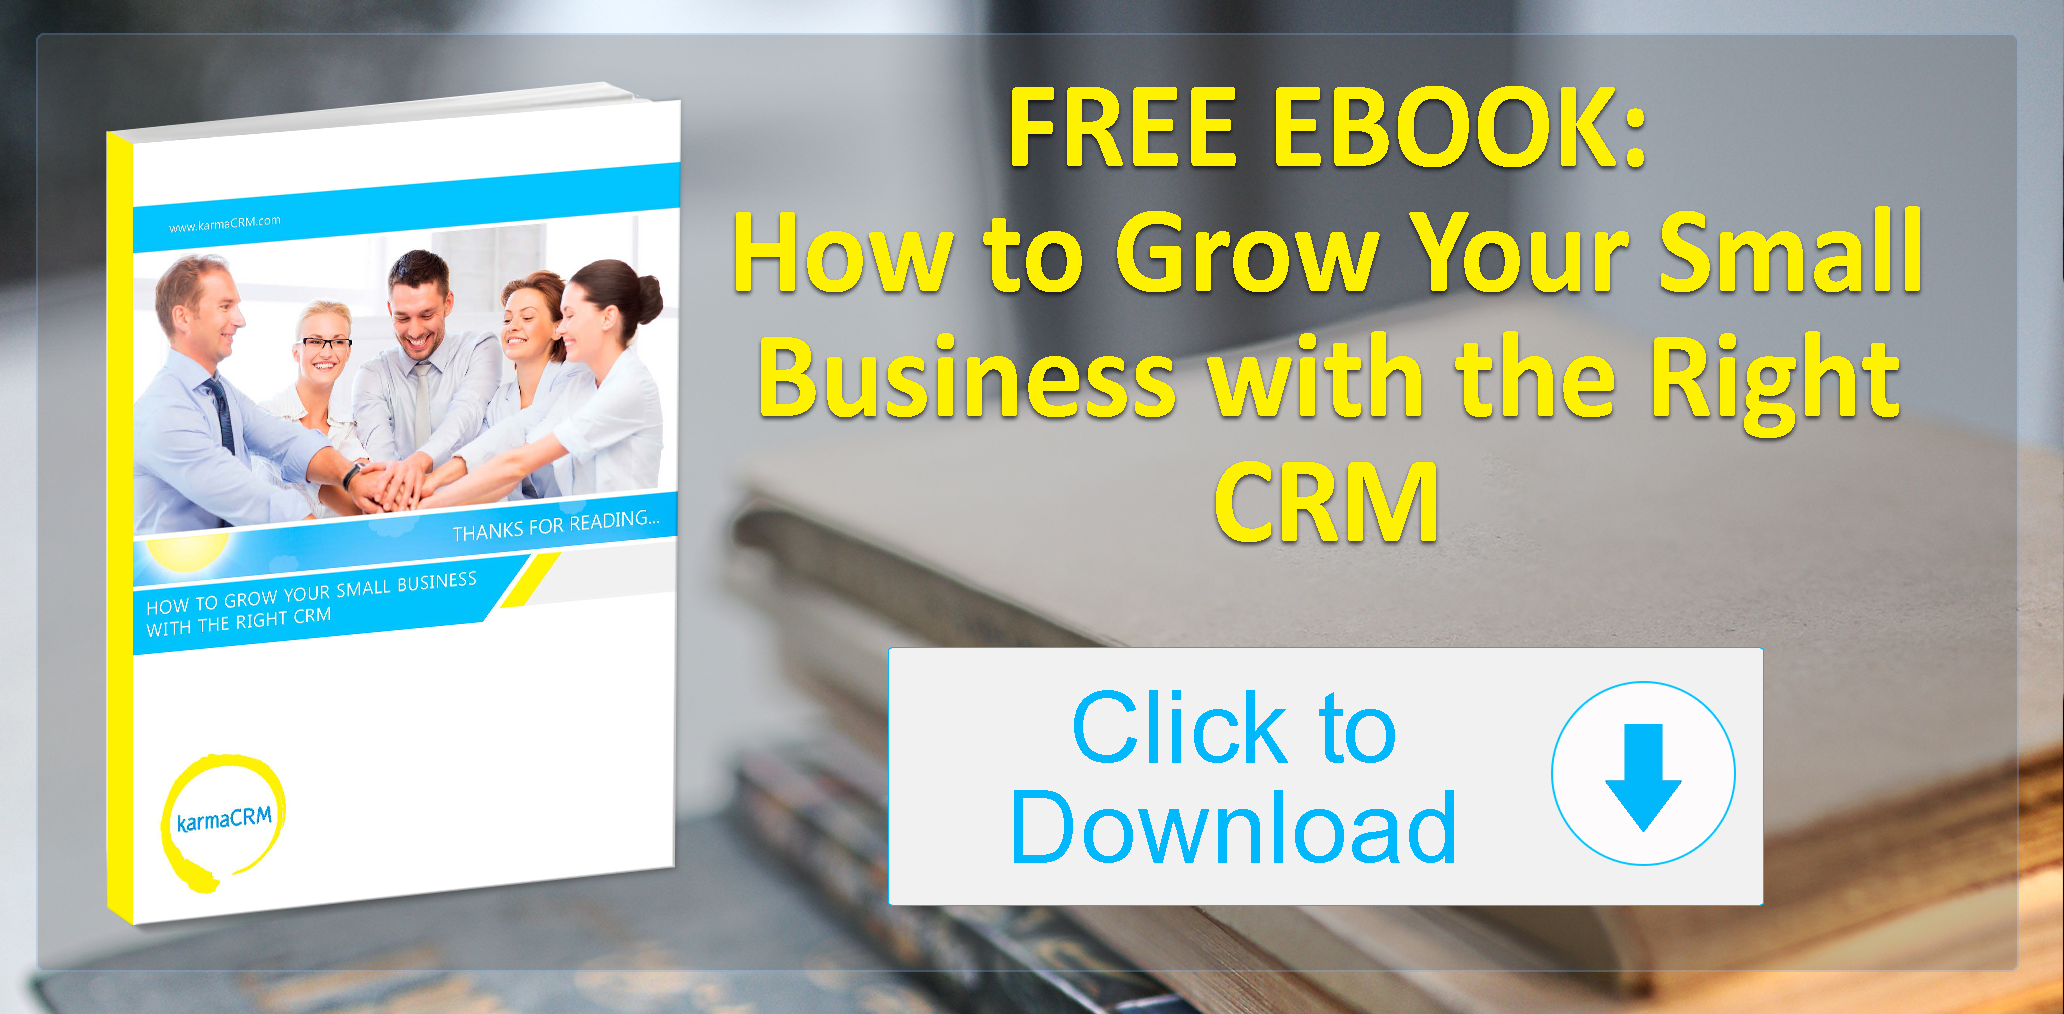 Ebook-How-to-Grow-Your-Small-Business-with-the-Right-CRM